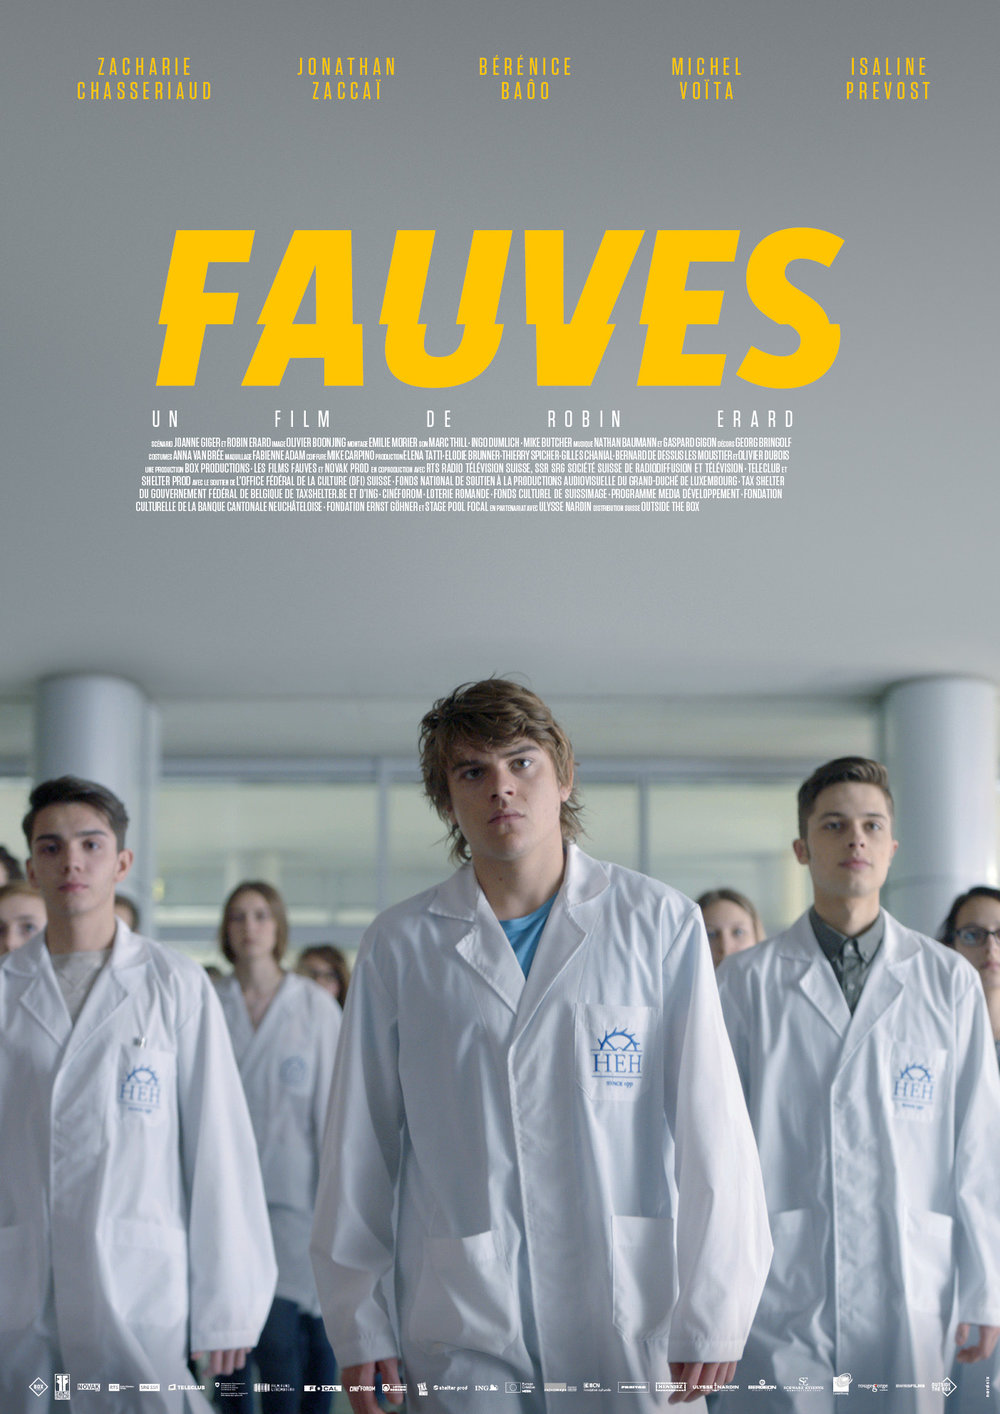 FAUVES  Feature film directed by Robin Erard, in co-production with Box Productions (CH) and Novak Prod (BE)